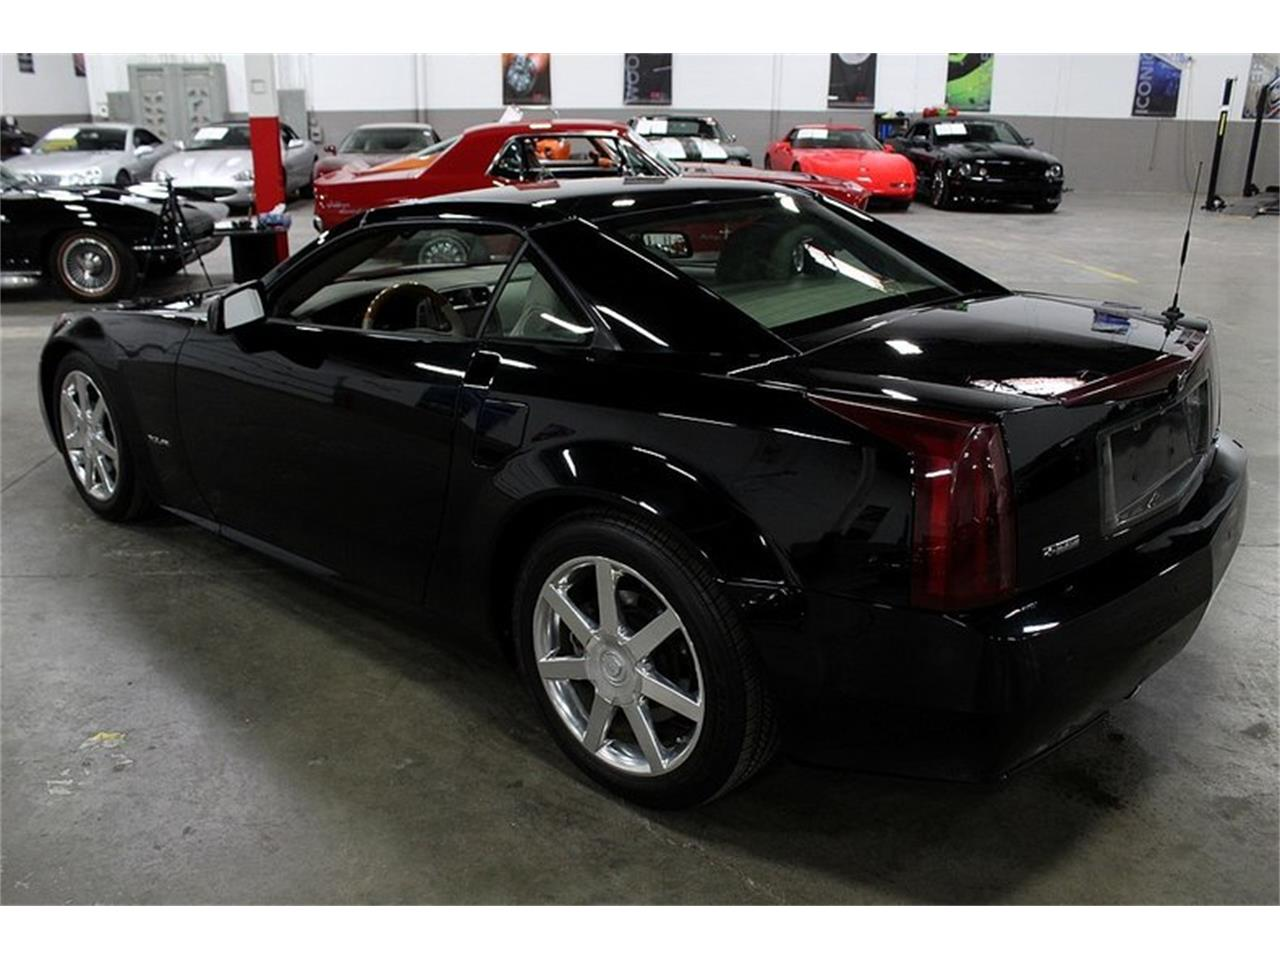 2004 Cadillac XLR for sale in Kentwood, MI – photo 70